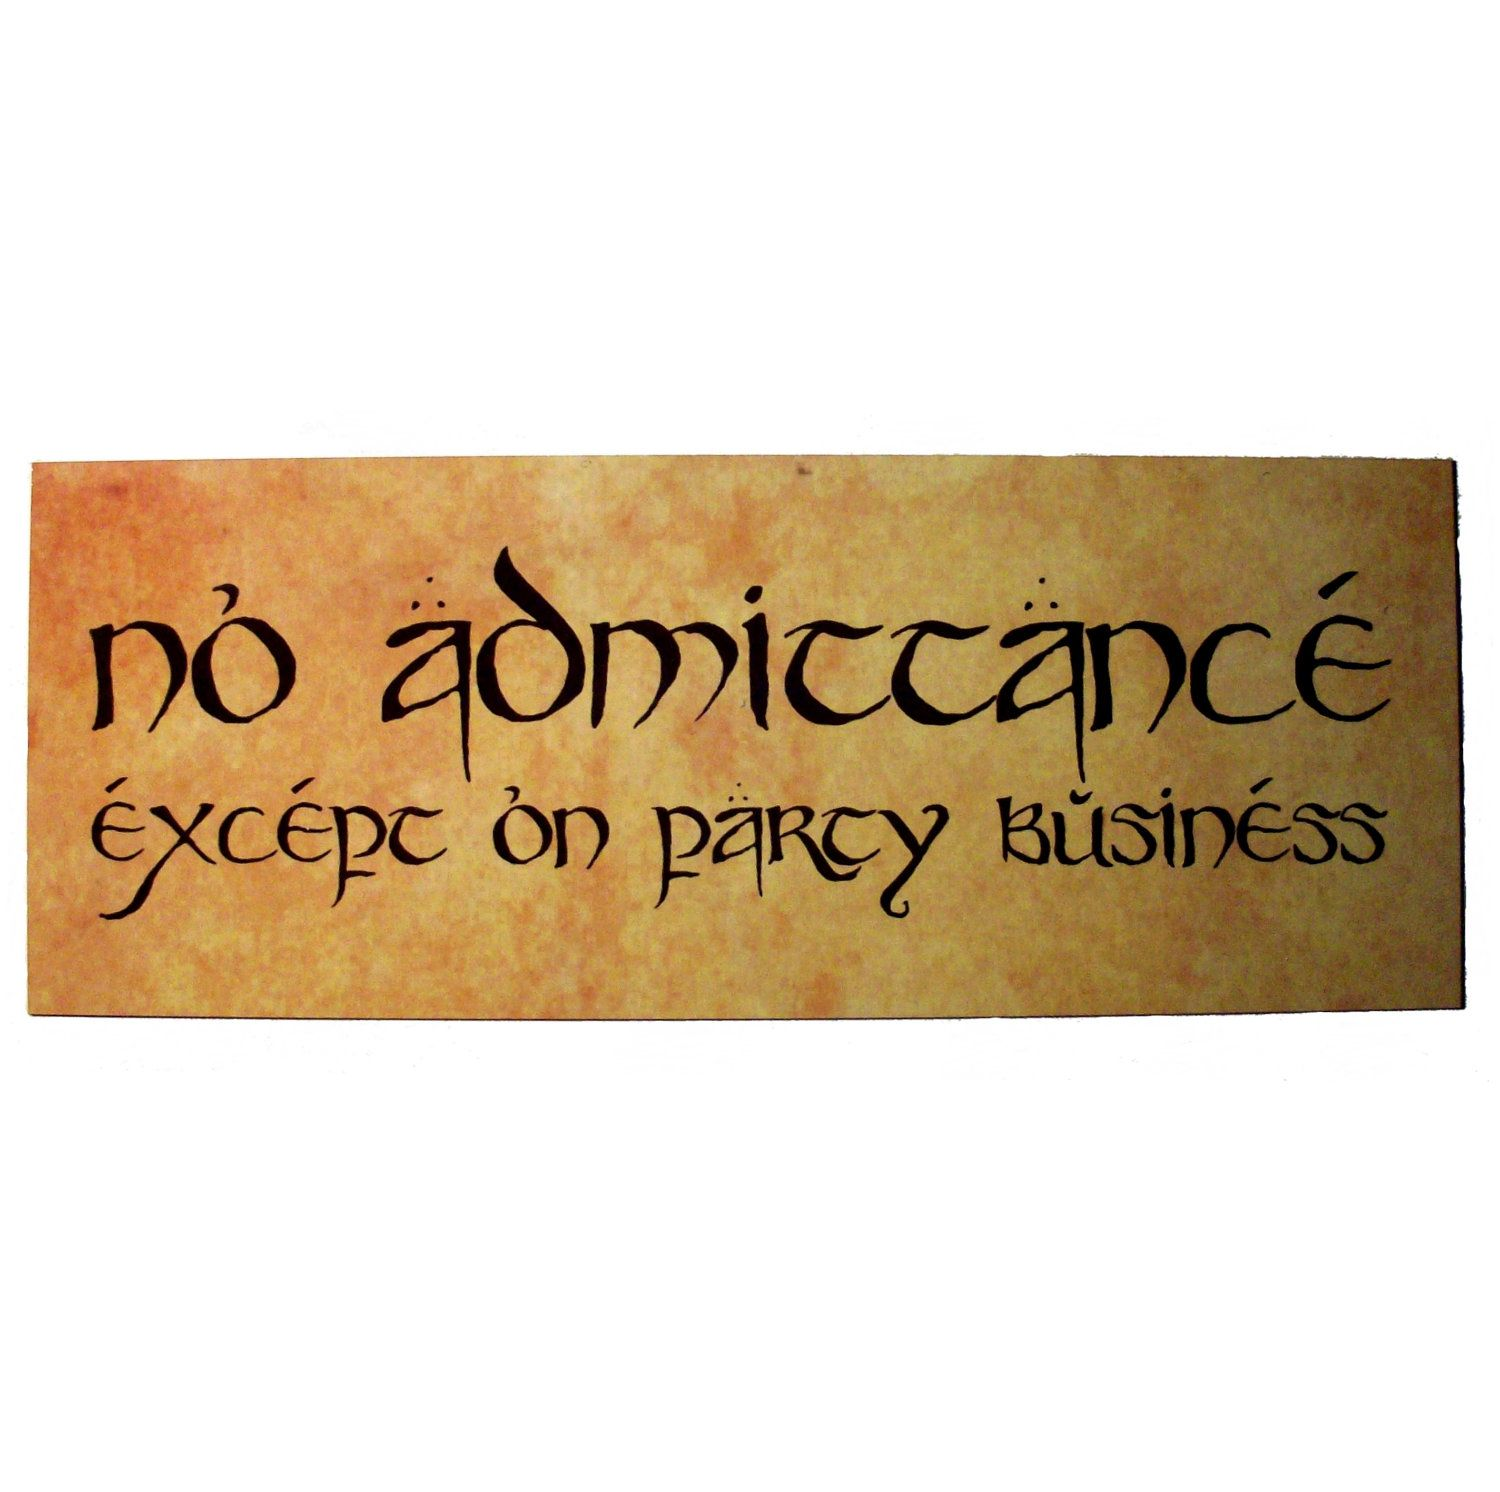 No Admittance Except On Party Business Sign By Gelertdesign On